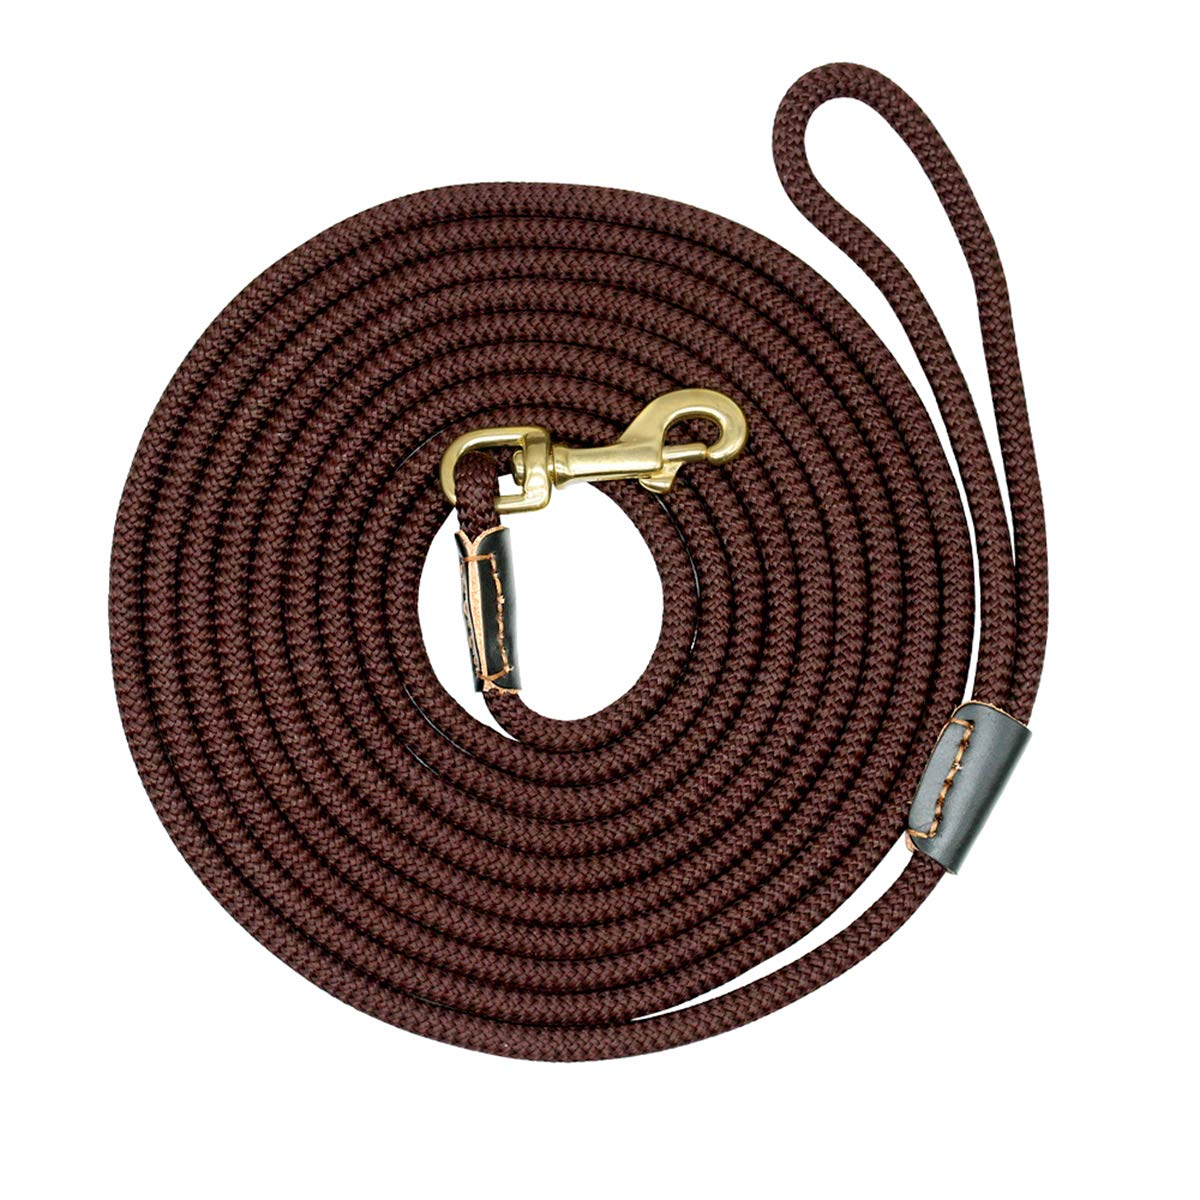 Coffee 10m Coffee 10m PETFDH Durable Dog Tracking Leash Nylon Long Leads Rope Pet Training Walking Leashes 3M 5M 10M 20M for Medium Large Dogs Non-Slip Coffee 10m